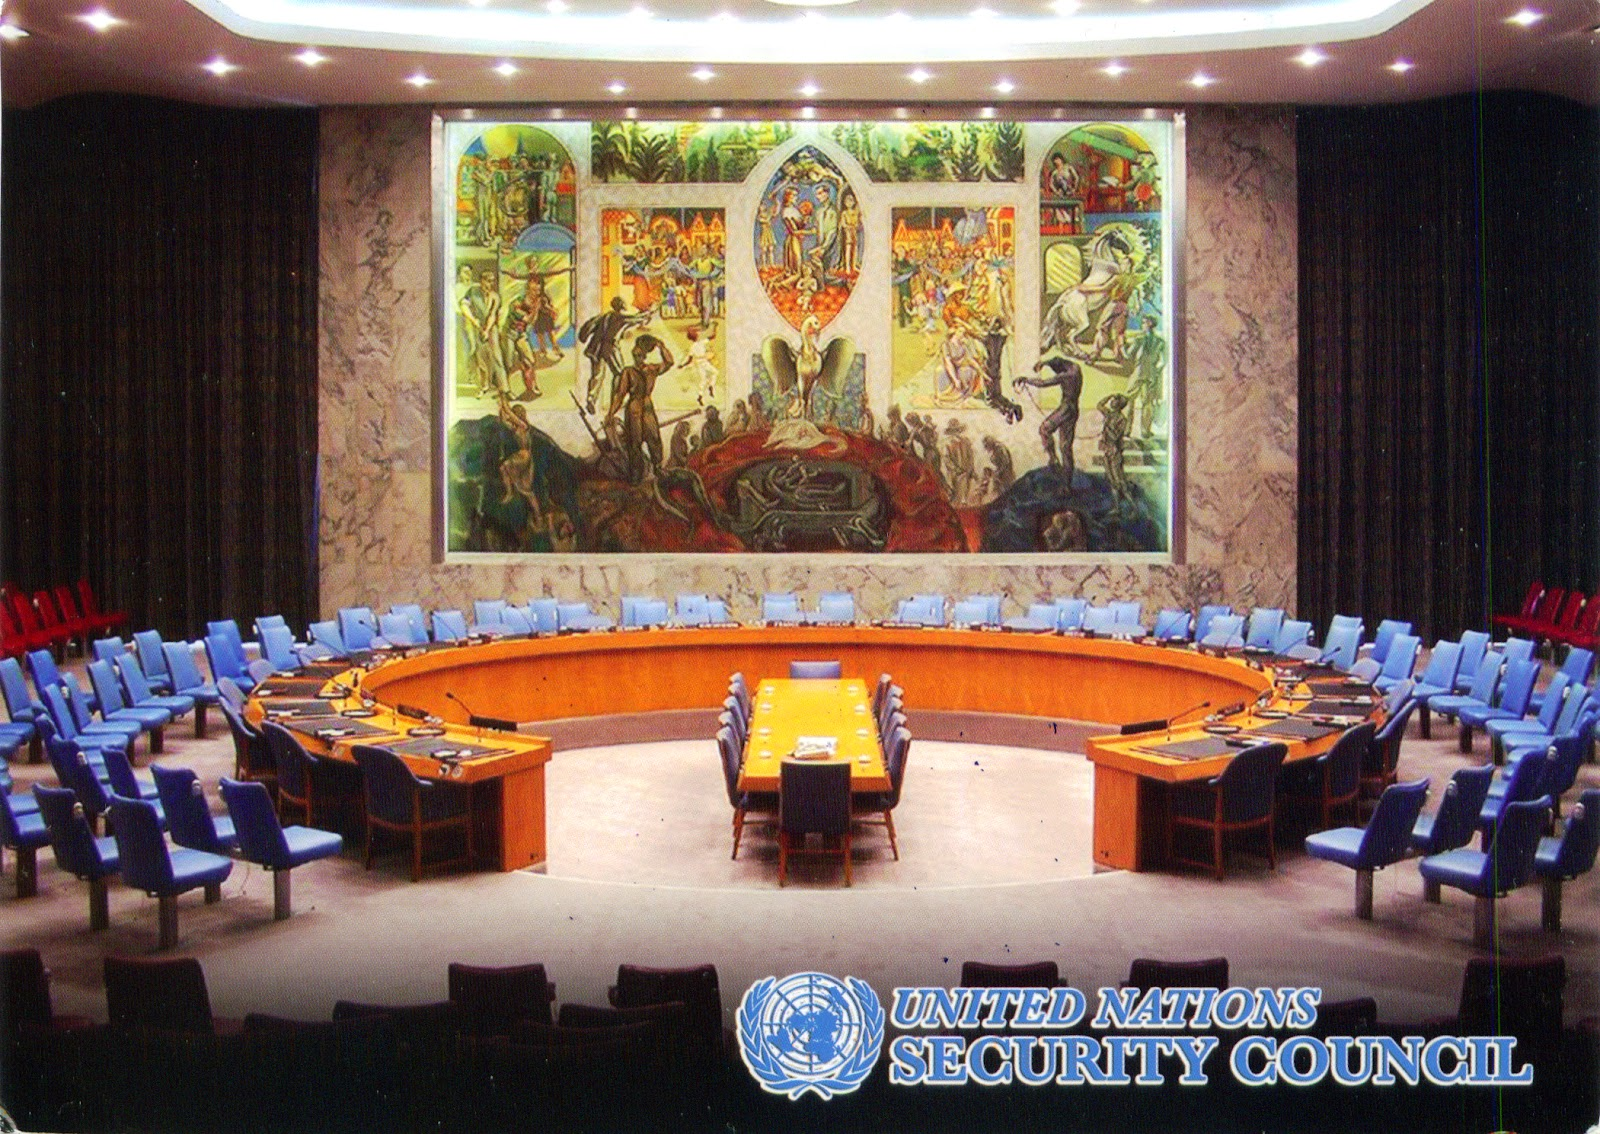 World Come To My Home United Nations